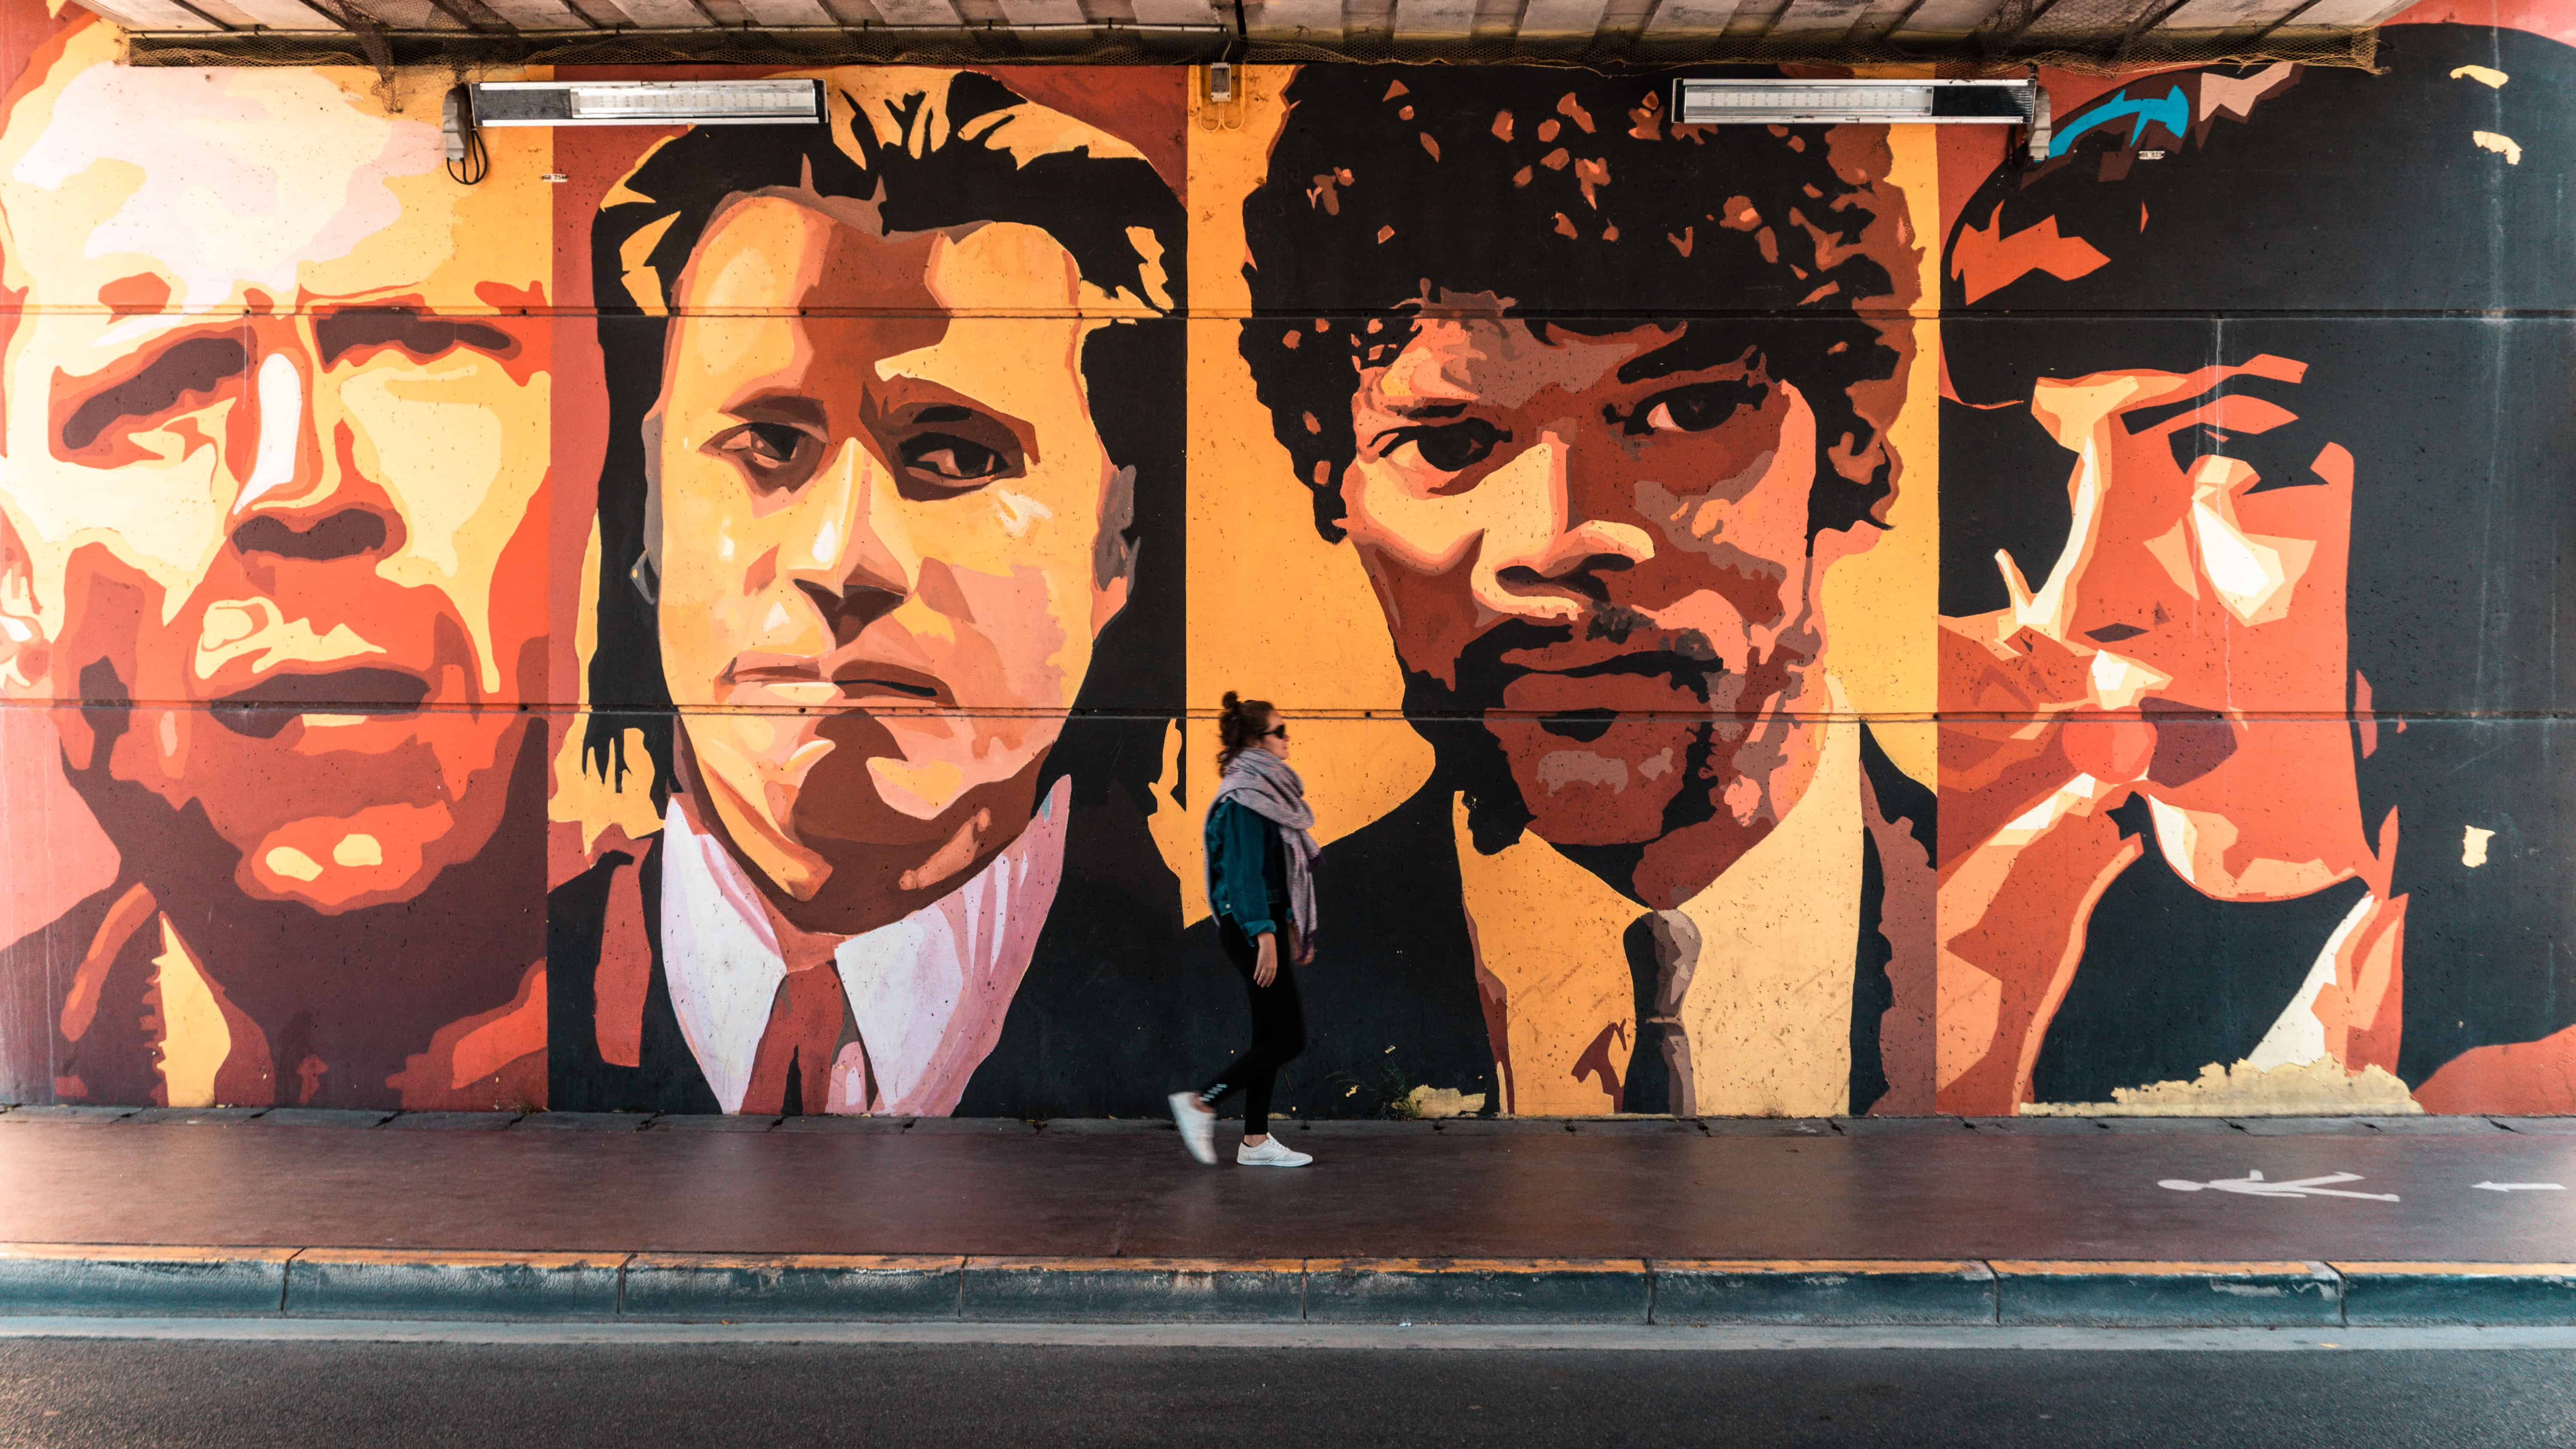 Pulp fiction mural in Cannes, France